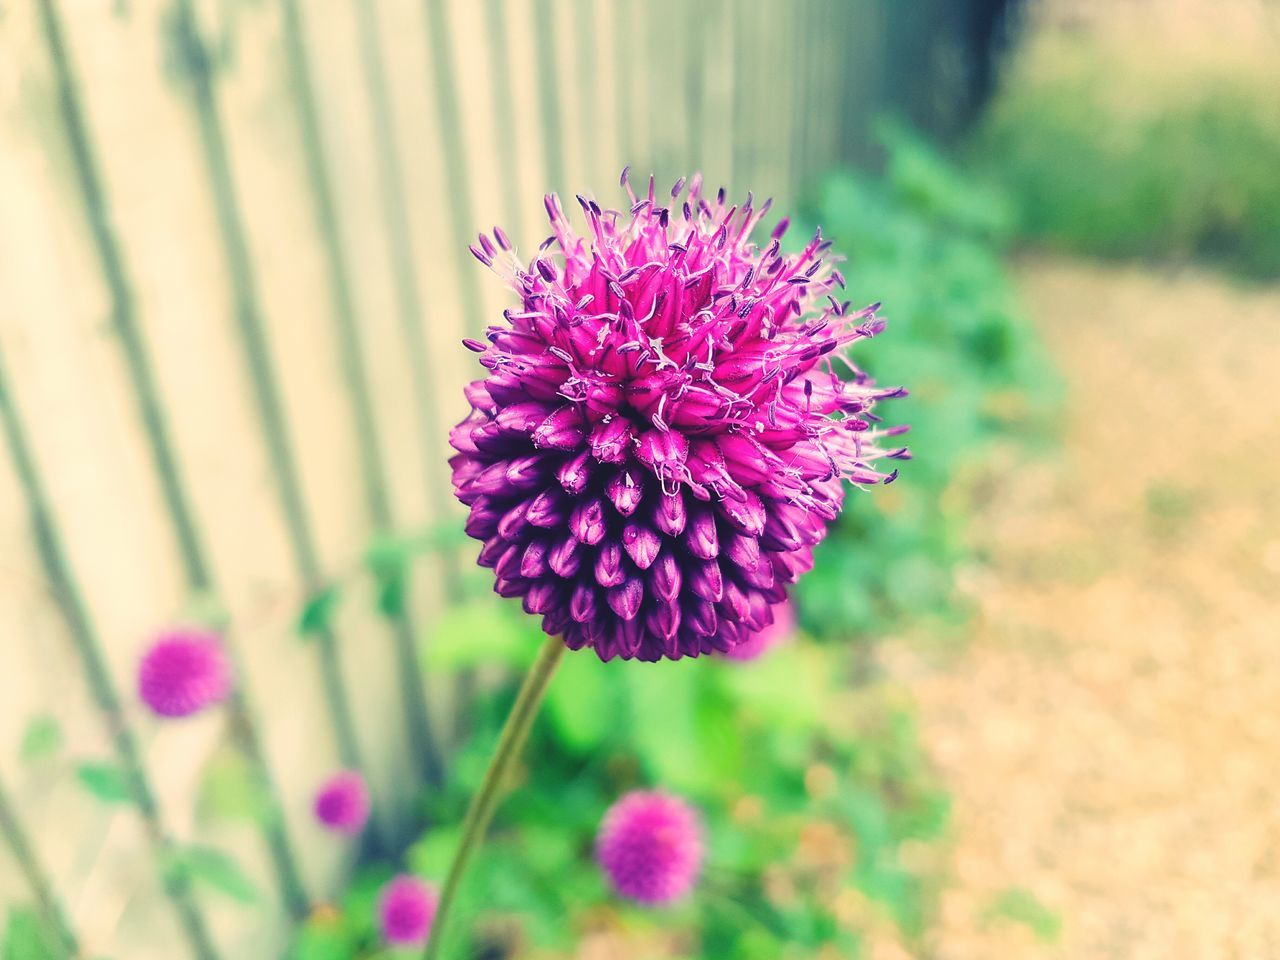 flower, fragility, beauty in nature, petal, nature, growth, freshness, flower head, no people, plant, purple, day, blooming, focus on foreground, close-up, pink color, outdoors, animal themes